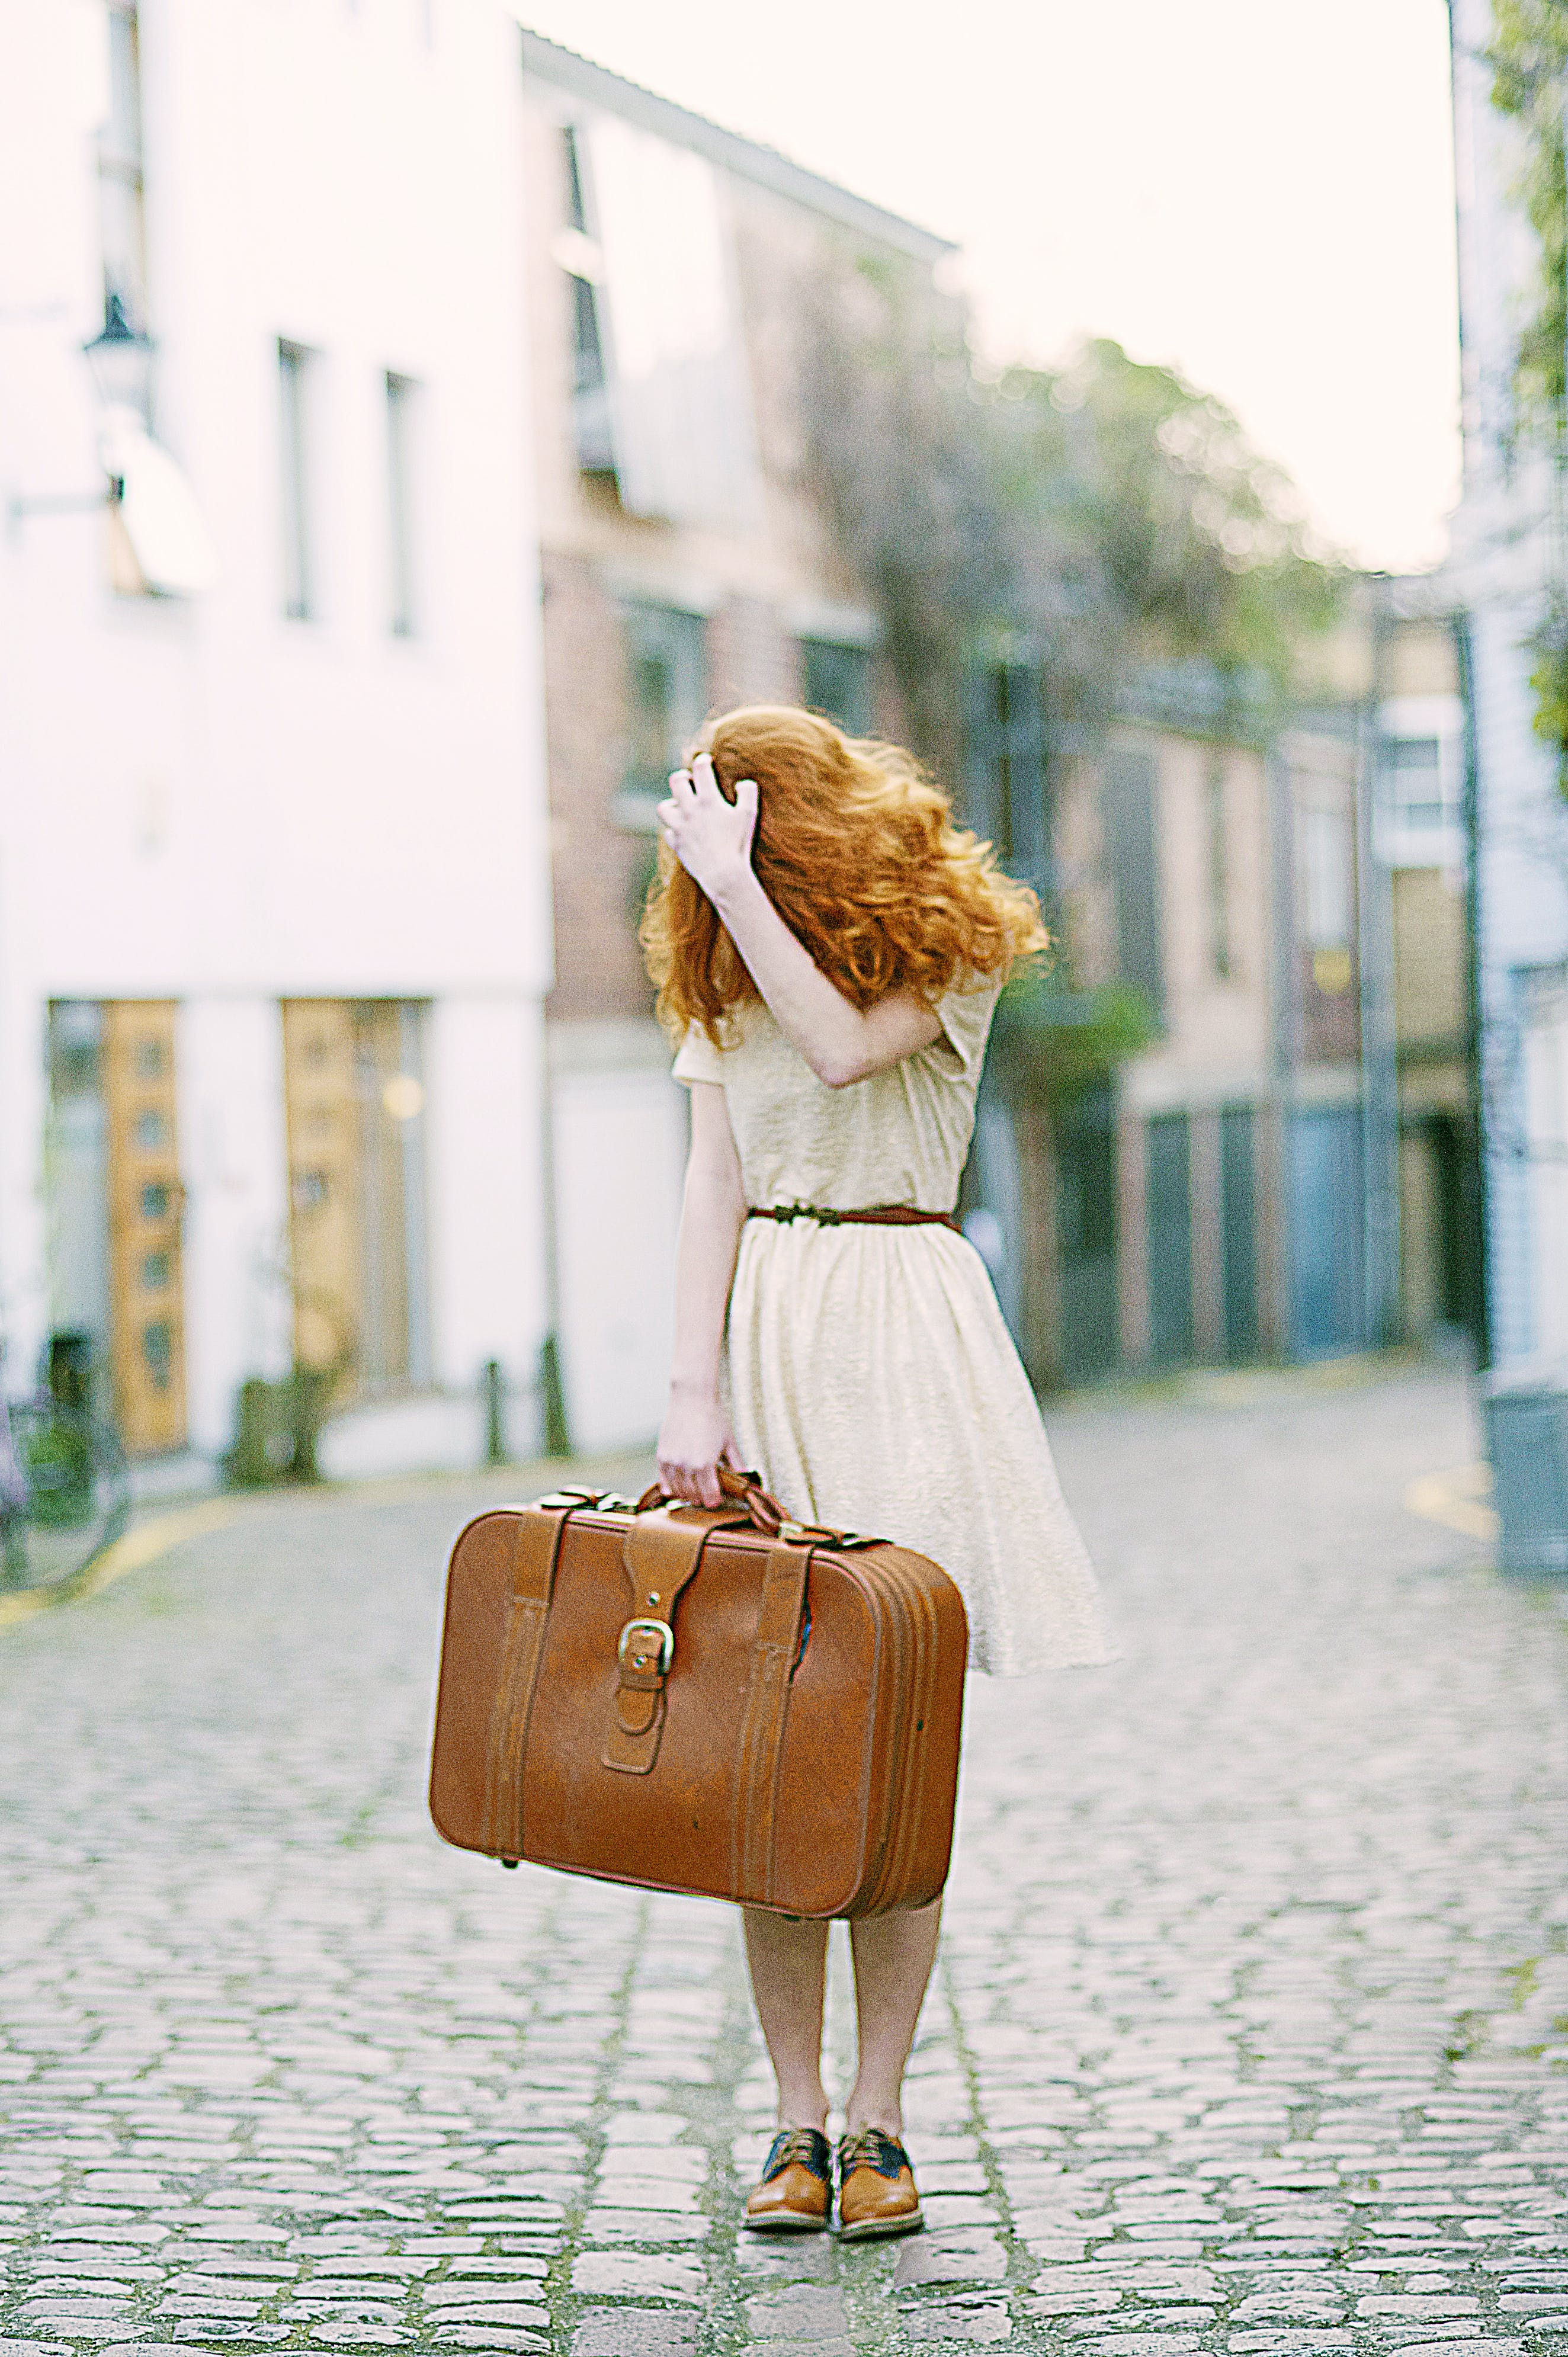 Woman In White Short-sleeved Dress Holding Brown Leather Suitcase